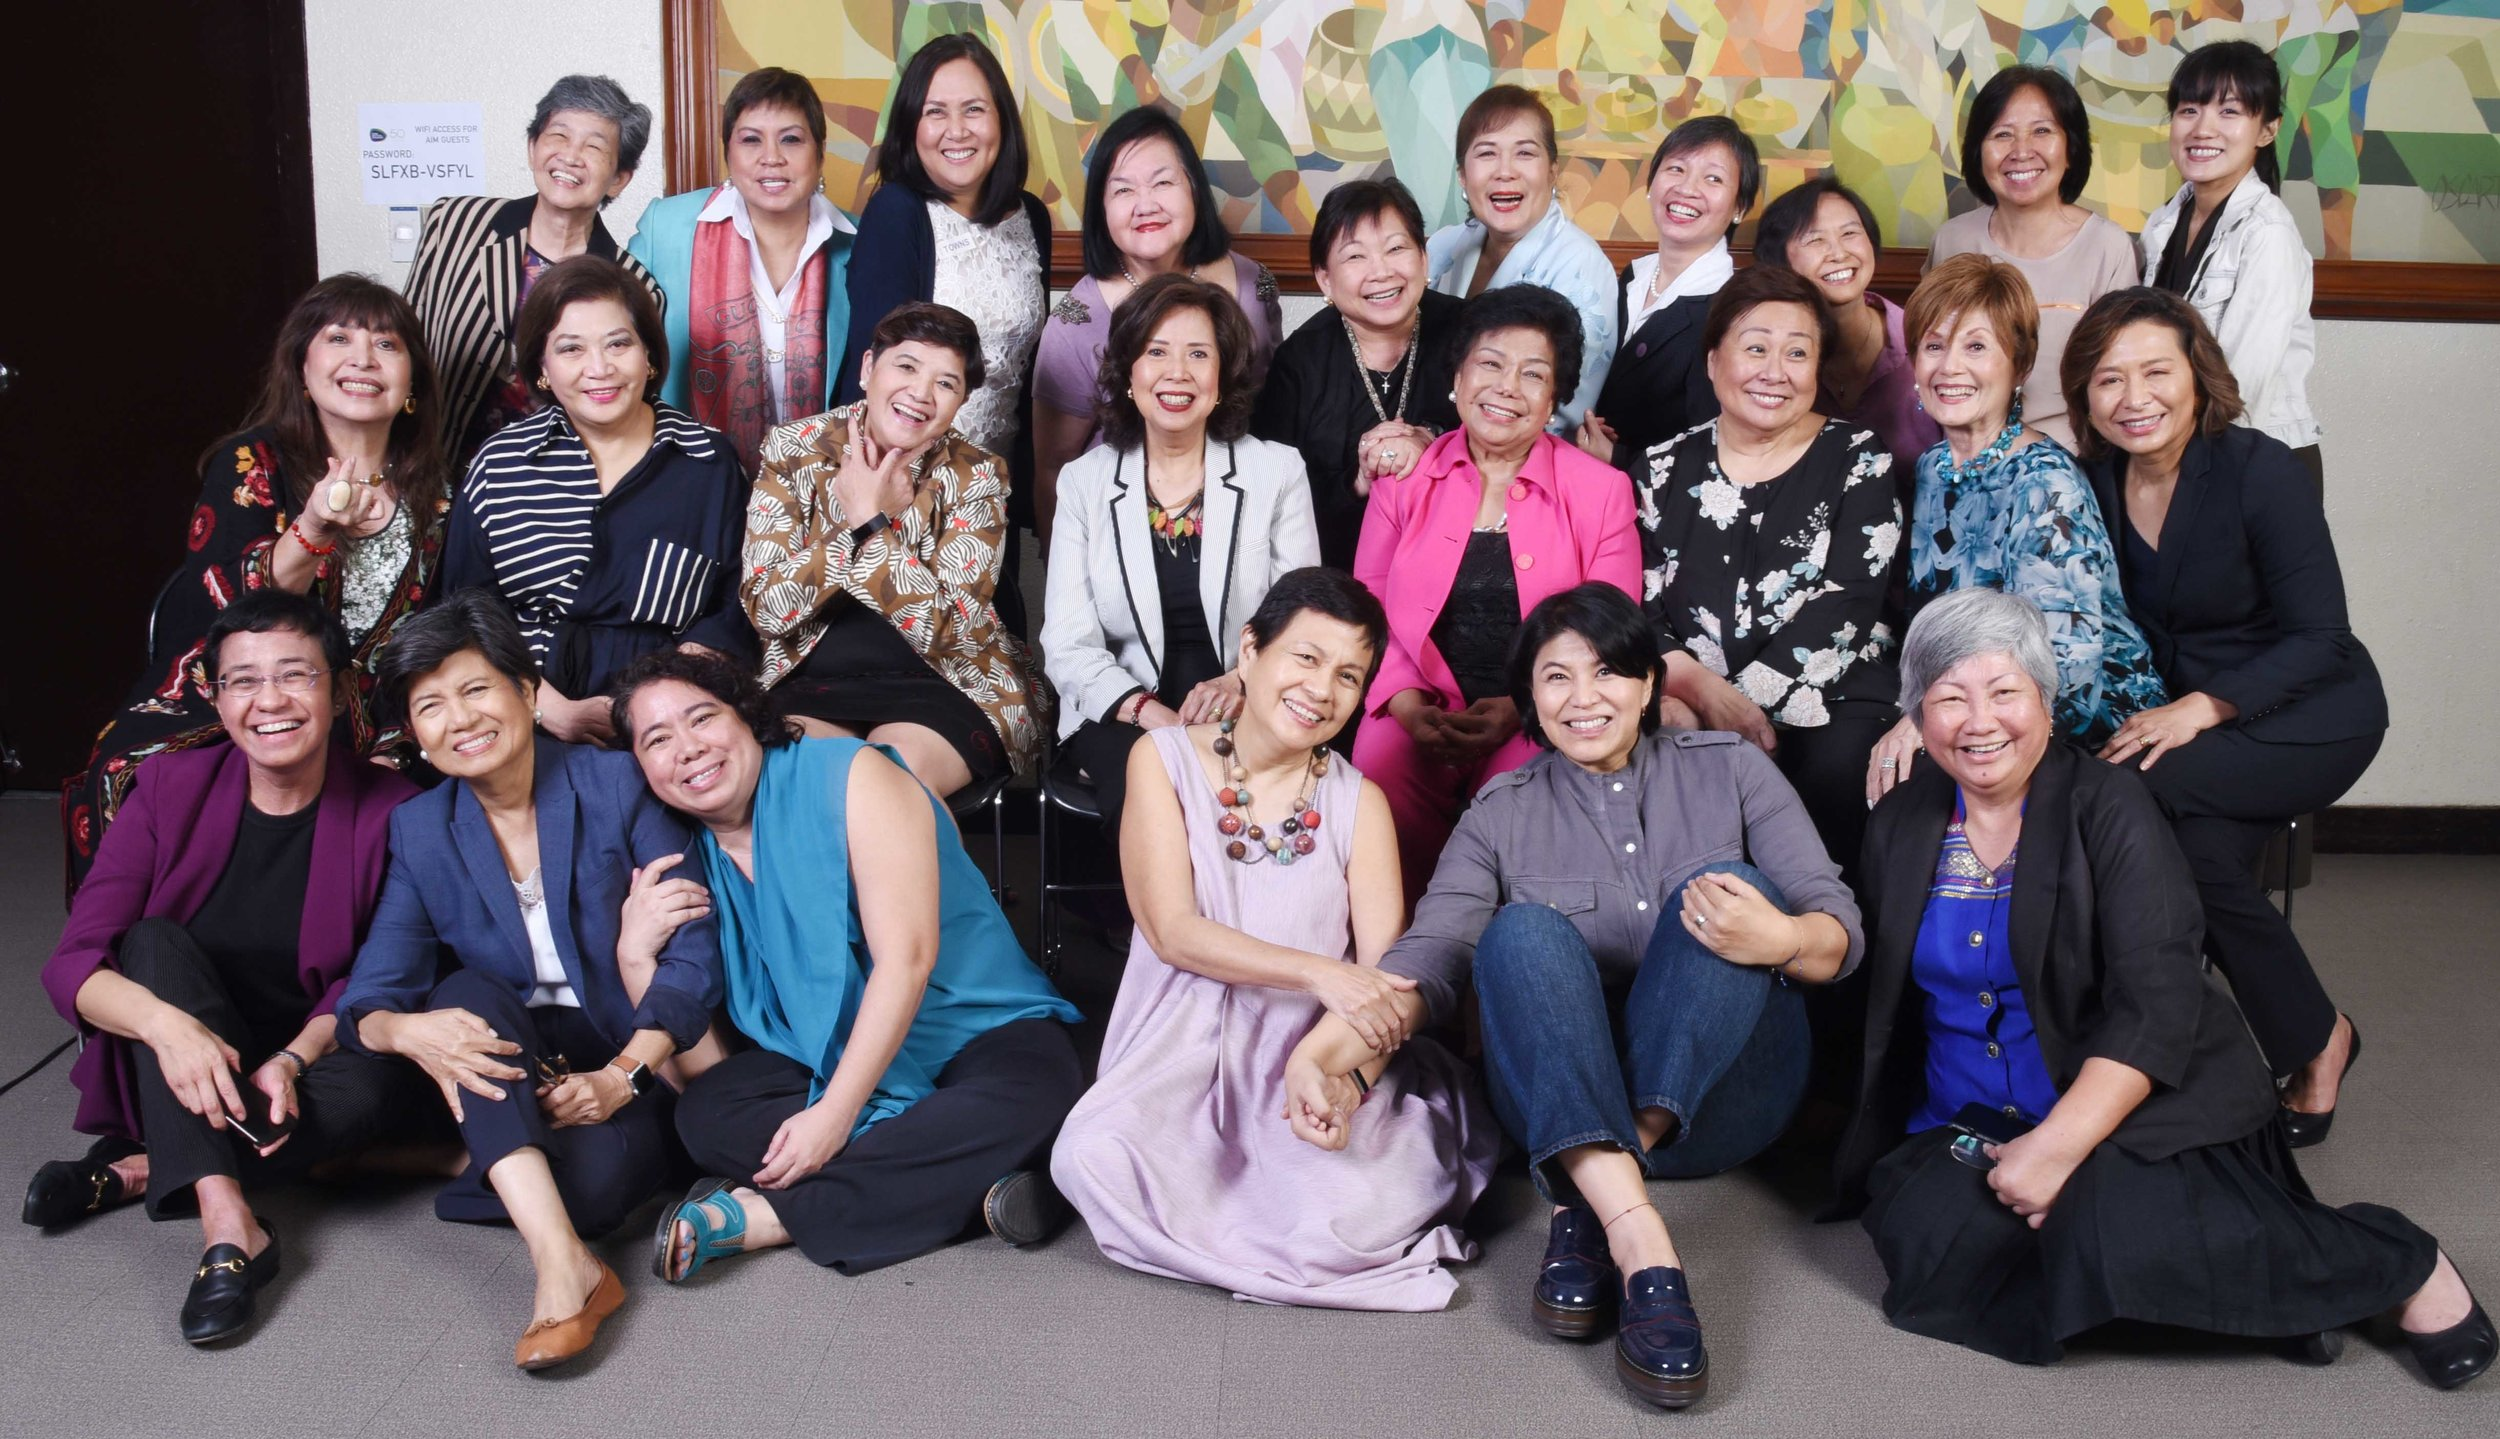 """Part of TOWNS' AWARDEES at the TOWNS TALK@AIM RECENTLY. Front row seated from left, Maria Ressa - 2007 for Broadcast Journalism; Cecilia """"Cheche"""" Lim-Lazaro - 1989 Broadcast journalism; Laura David - 2101 for Oceanography; Cristina """"Nina"""" Lim-Yuson, PhD- 1992 for Education; Therese """"Gang"""" Badoy 2010 - Education; and Lilian F. Patena - 1998 Agriculture (Plant Tissue Culture).  2nd row  from left, Ma. Rosa """"Bing"""" Carreon - 1989 business. Evelyn R. Singson - 1981 Business; June Caridad Lopez -1989 - Psychiatry; Ma. Nieves R. Confessor - 1992 Government Service; Elsa Payumo - 1977 Tourism; and Cecilia """"Ces"""" Orena-Drilon - 2004 Journalism.  Last row from left, Teresita Ang See 1992 - Cultural Integration; Lorna P. Kapunan - 1995 Law; Yolanda V. Ong - 1995 Communications; Imelda Virginia G. Villar, PhD. - 1989 Education; Amelia """"Mel"""" C. Alonzo - 1992 Government Service; Corazon """"Cora"""" P. CLaudio - 1989 Science Technology; Catherine Vistro-Yu - 2007 Education; Ma. Antonette J. Menez - 2001 Science; Virginia Cuevas -1992 Agriculture and Eleonor Pinugu - 2013 Education. (Photo by Mandy Navaser"""